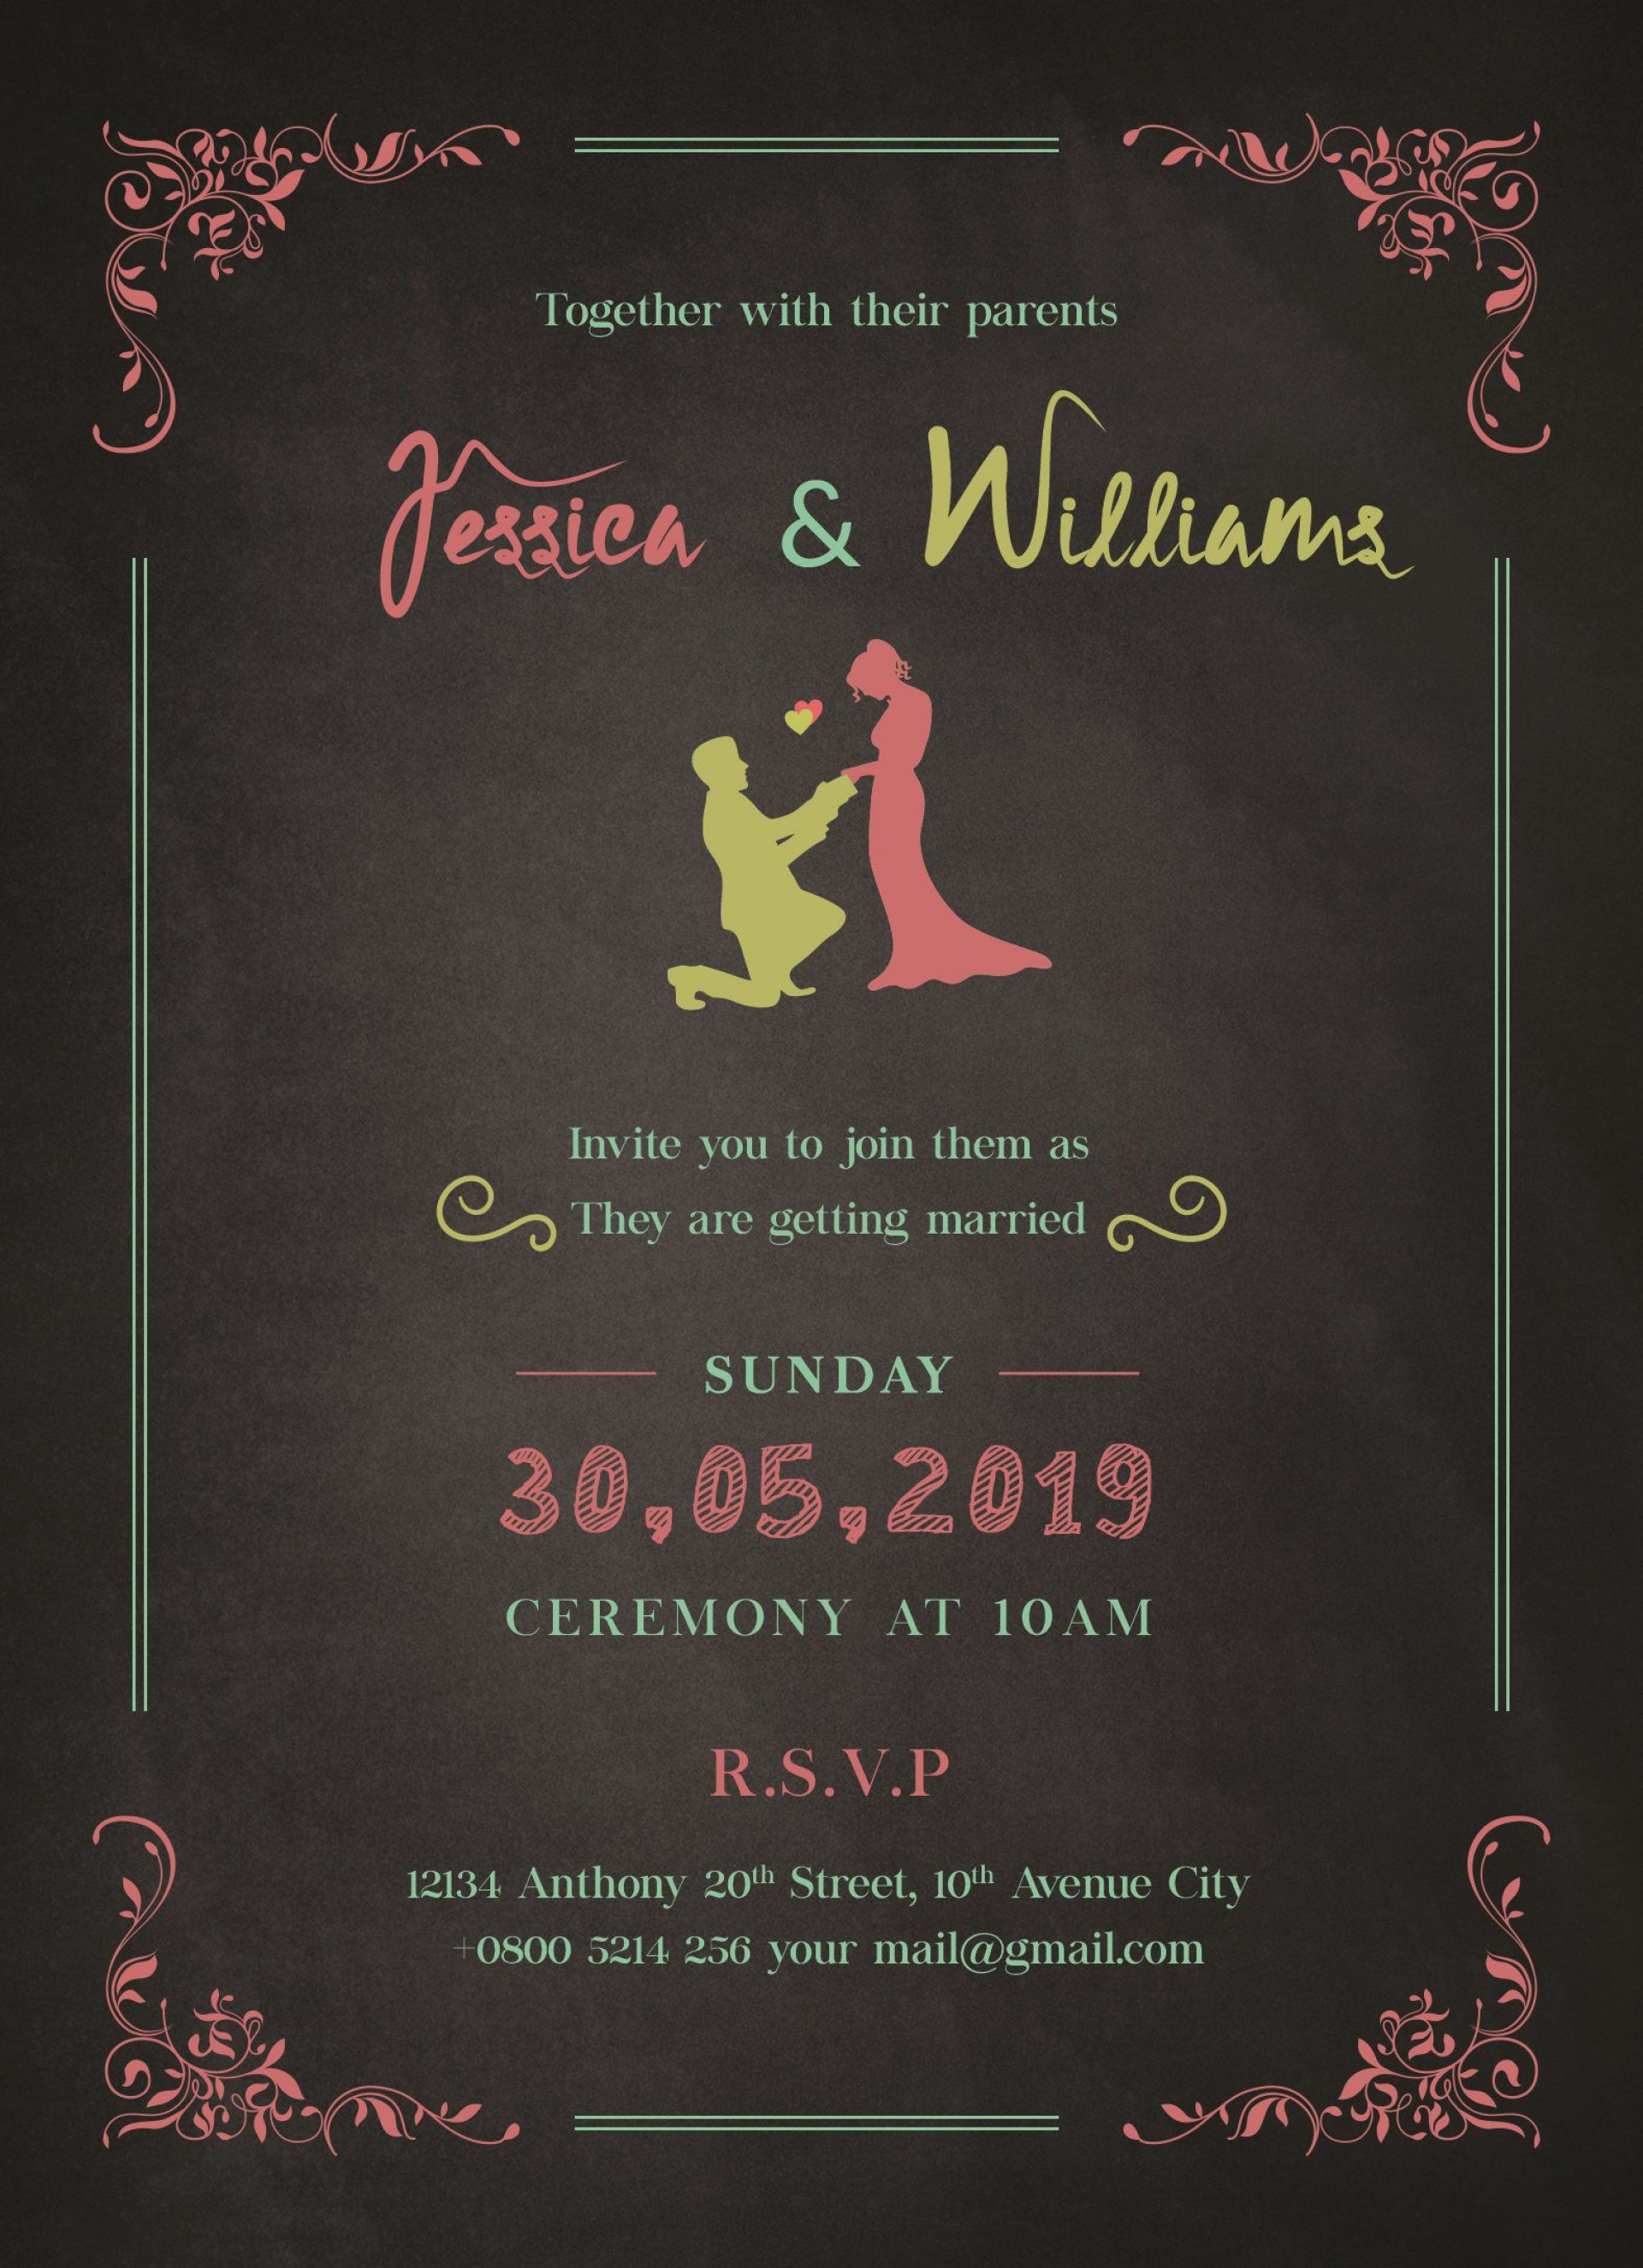 009 Imposing Free Download Invitation Card Design Software Sample  Full Version Wedding For Pc1920